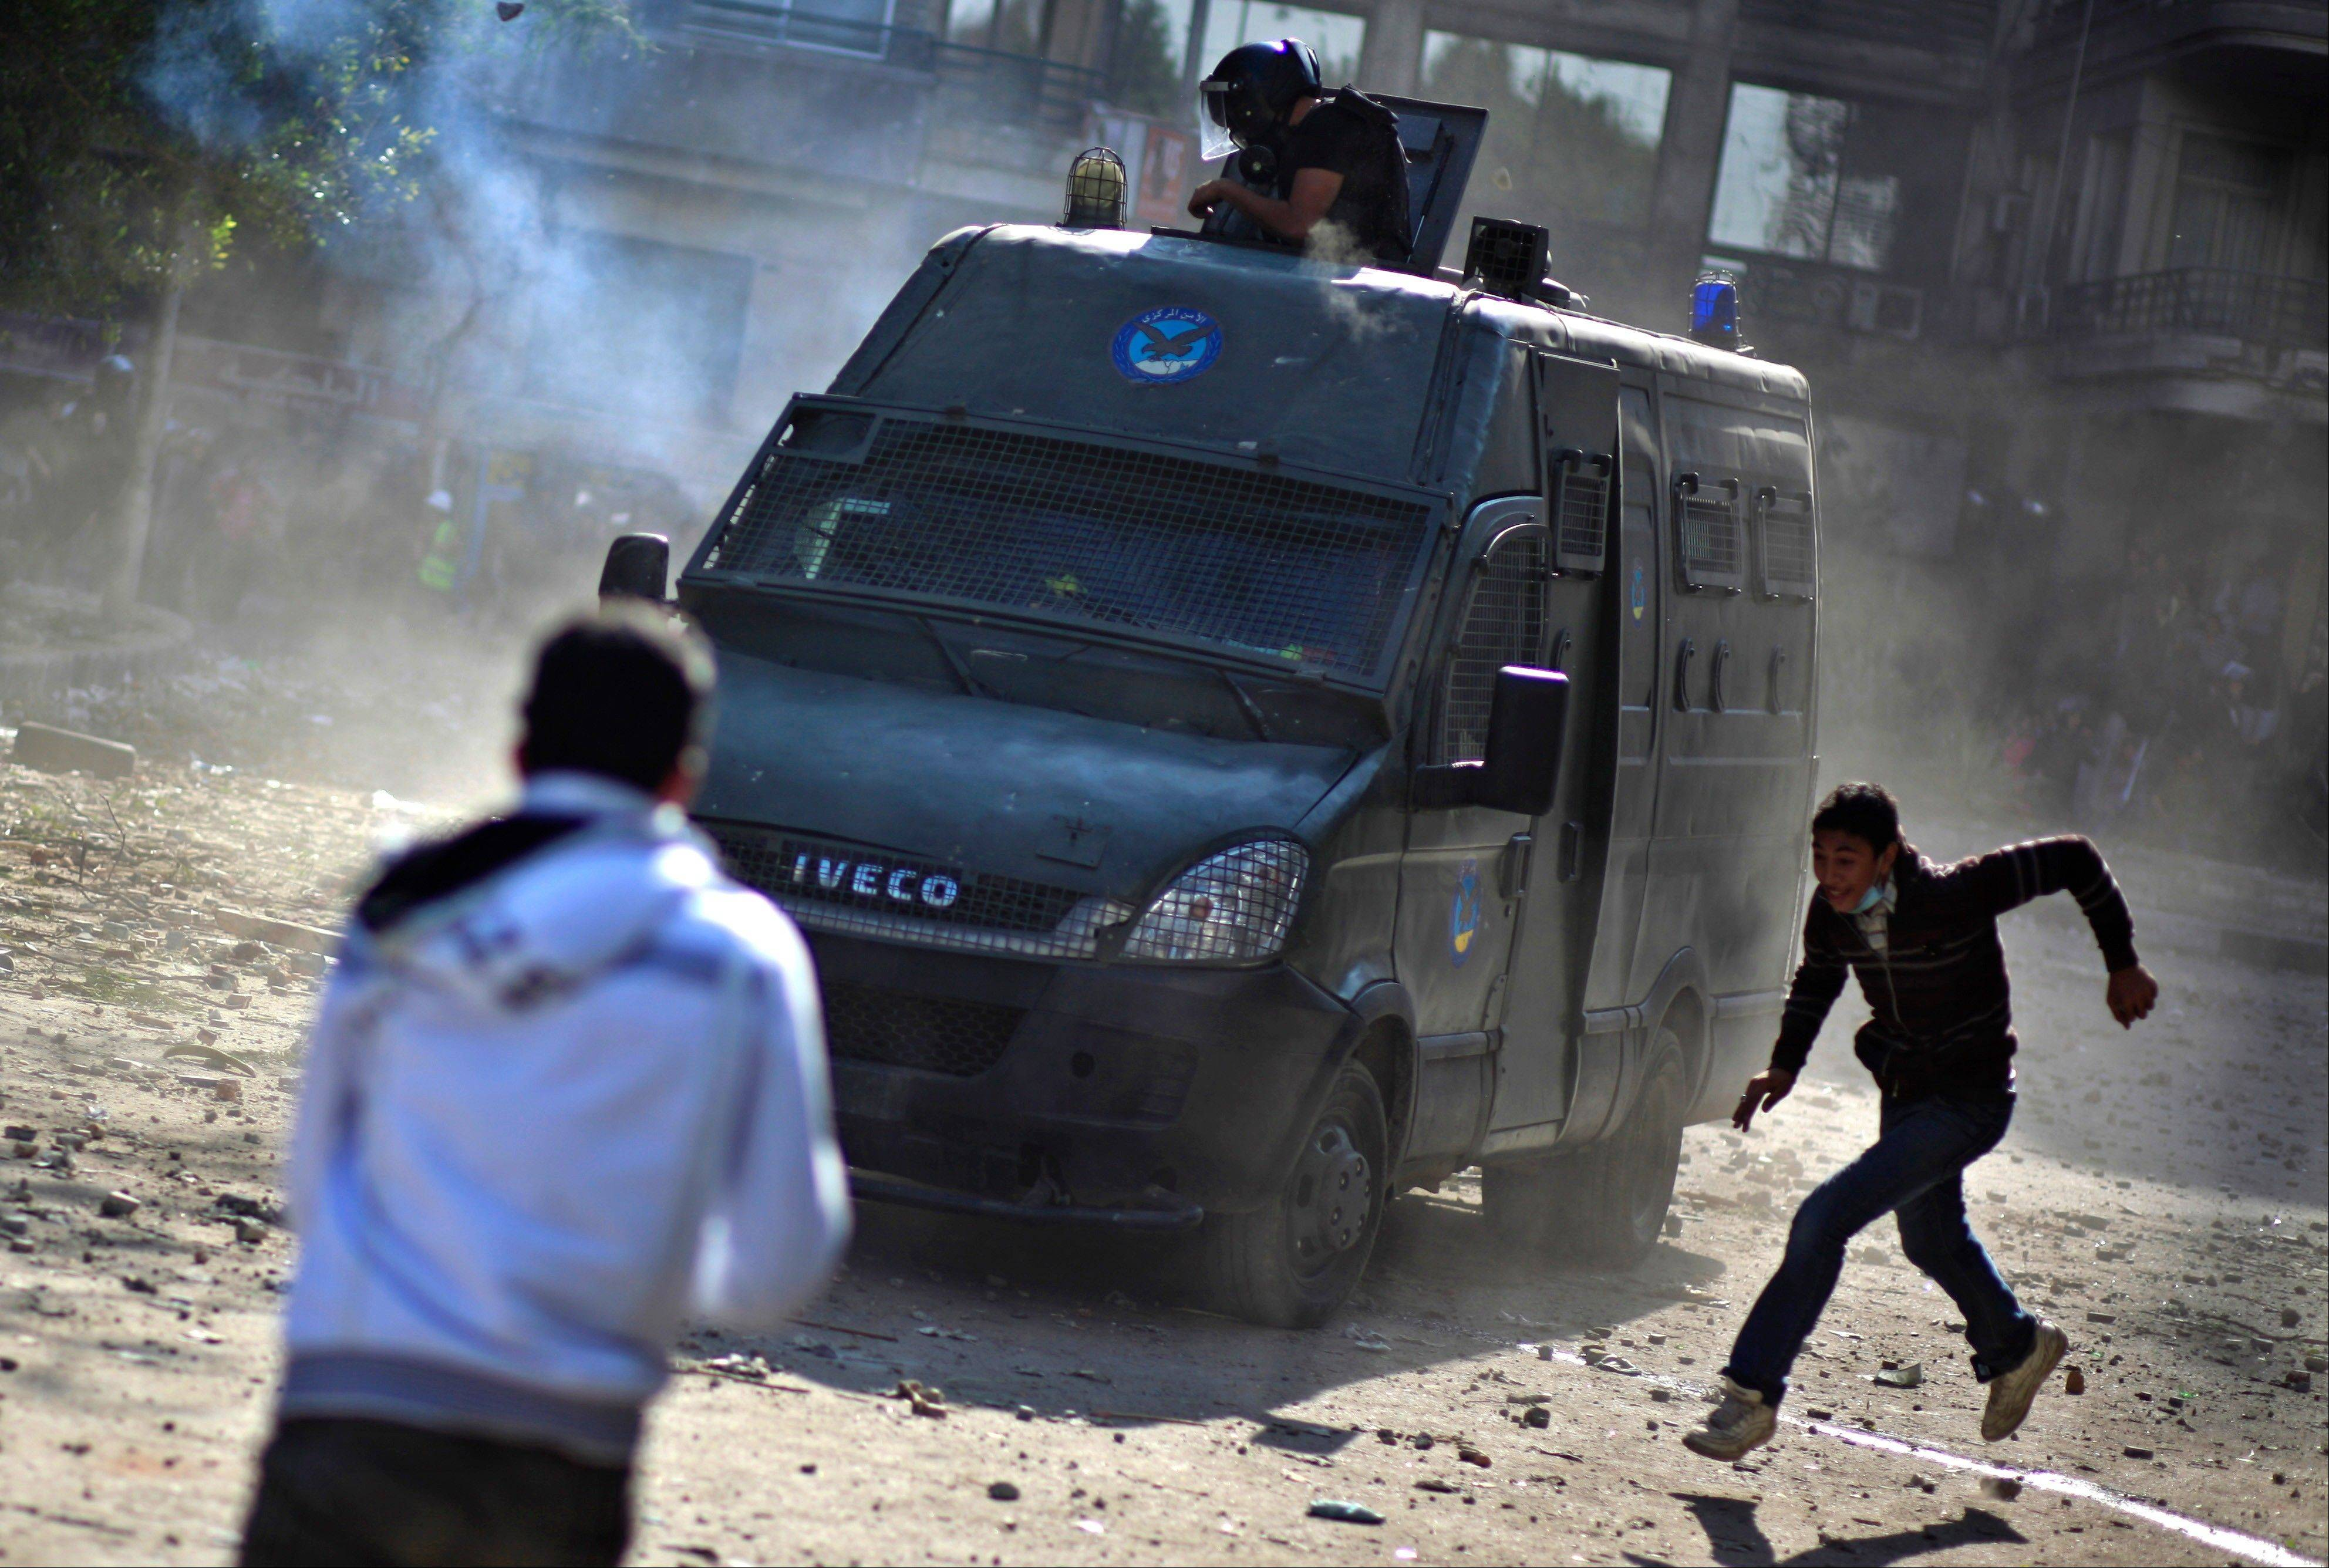 Egyptian protesters clash with security forces near Tahrir Square, in Cairo Wednesday. Egyptian state television says the country's highest appeal court has decided to suspend its work nationwide to protest the president's decrees giving himself nearly absolute powers.